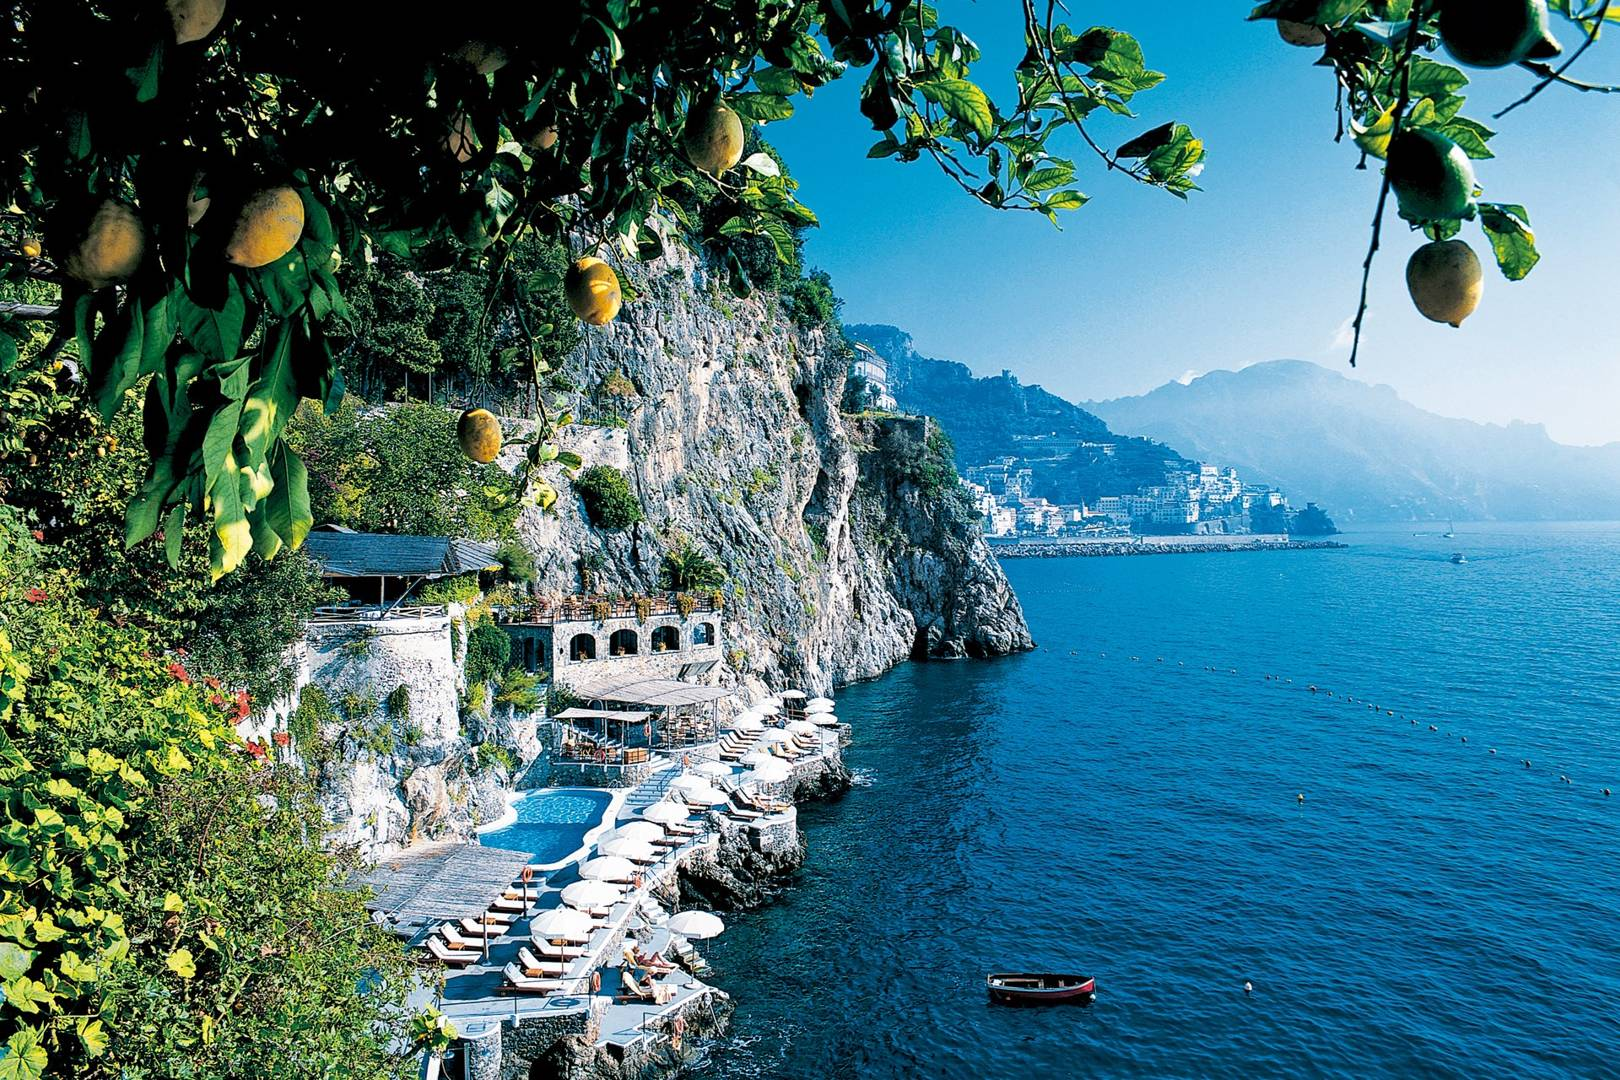 Hotel Santa Caterina: is this the best view on the Amalfi Coast?